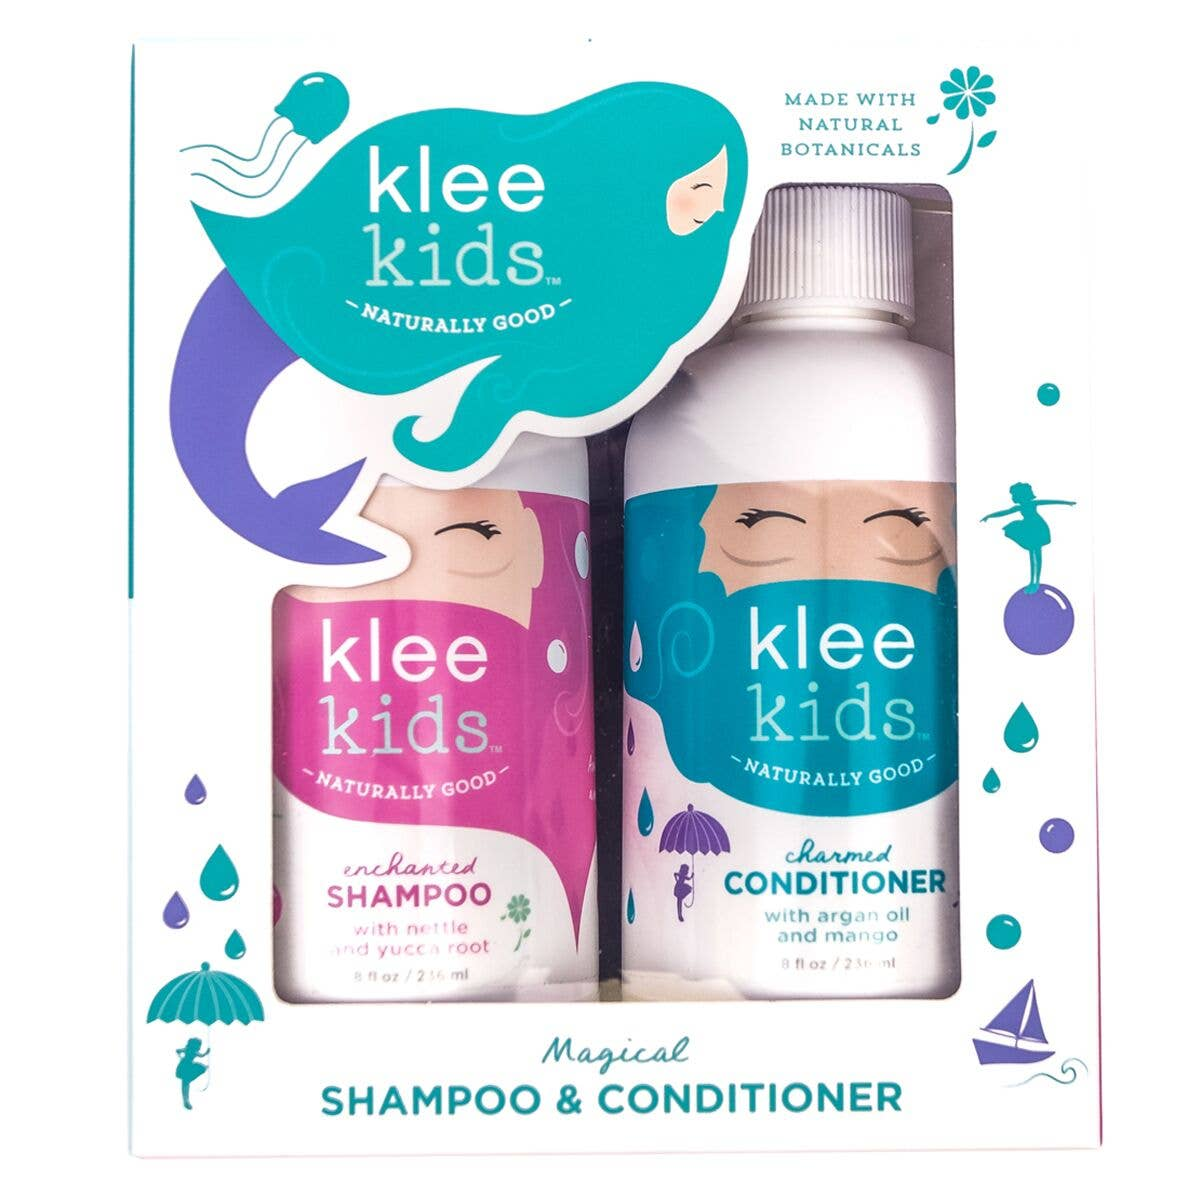 Klee Naturals - Klee Kids Enchanted Shampoo and Charmed Conditioner Set